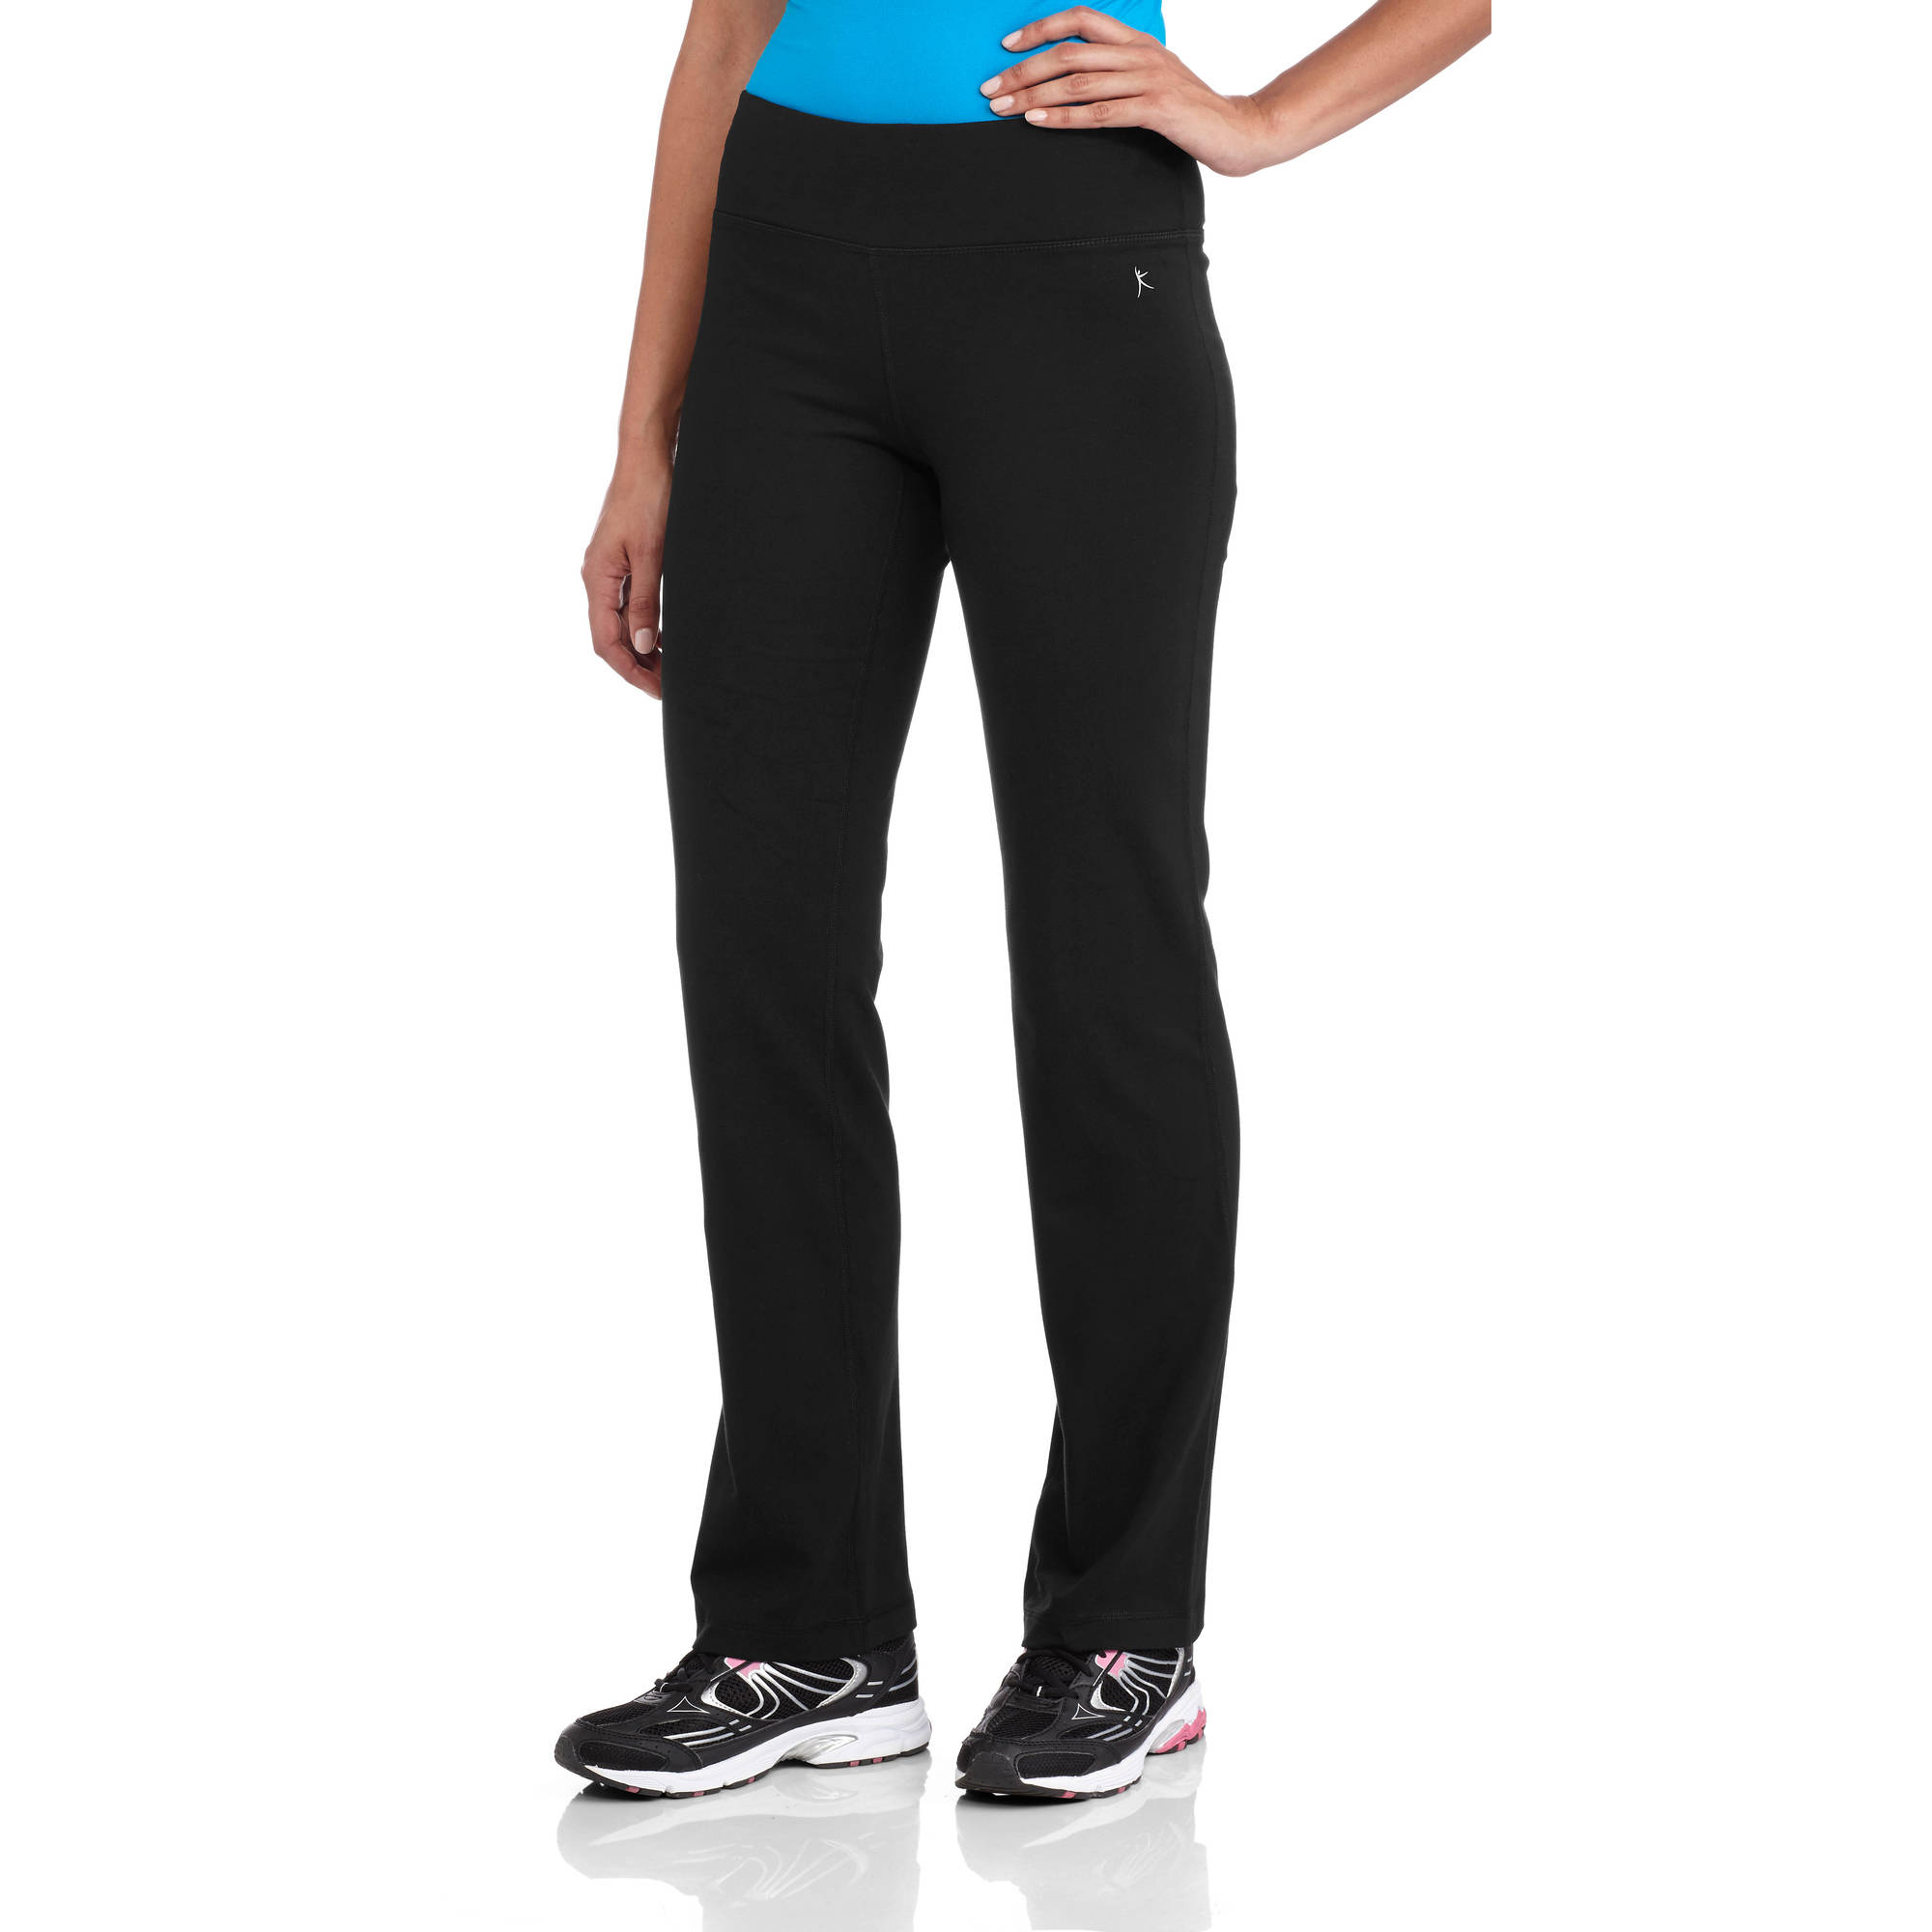 Danskin Now Women's Straight Leg Pant - Walmart.com